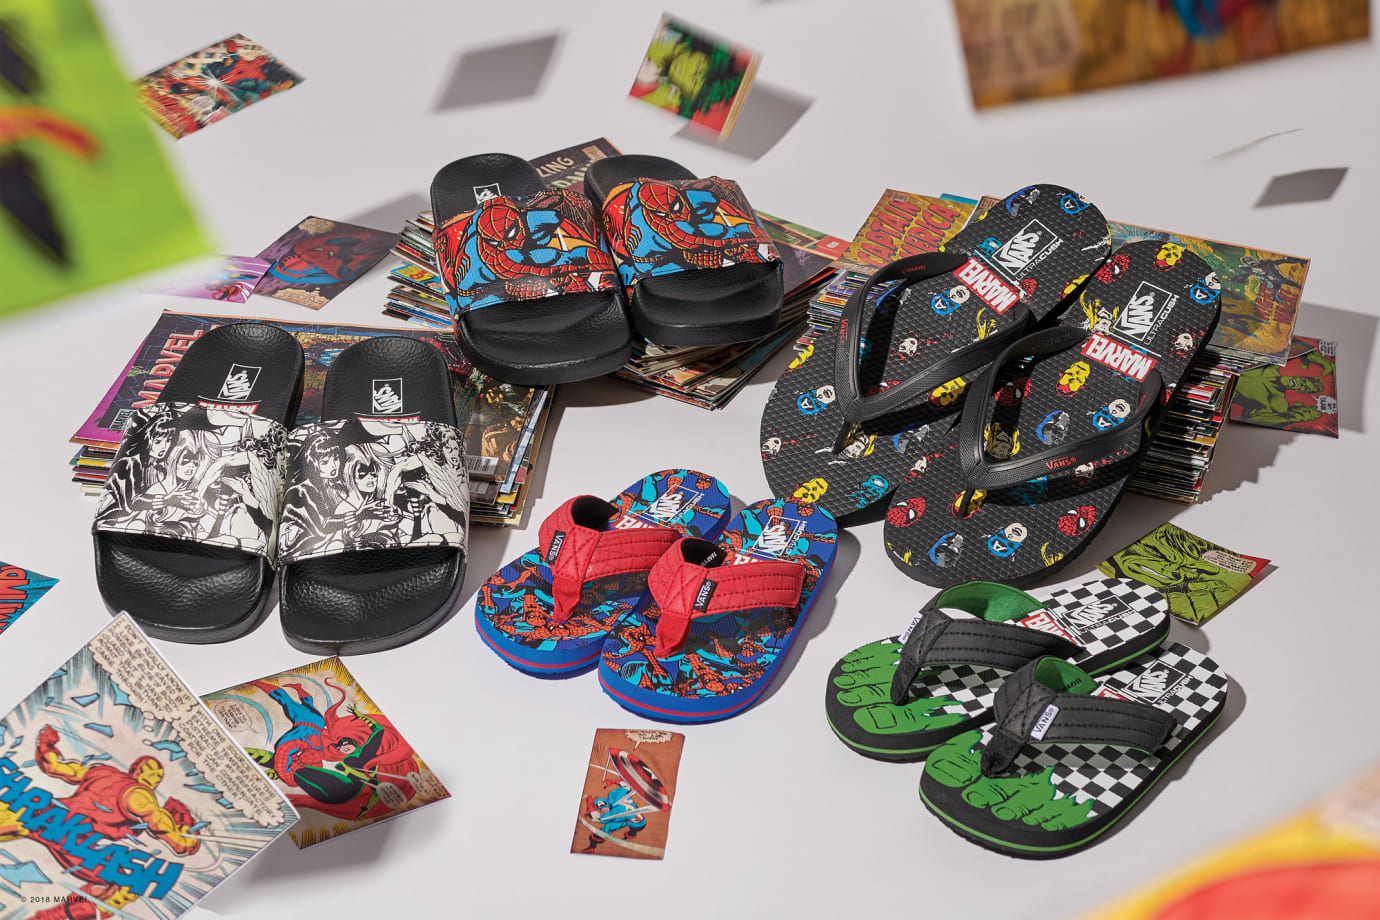 fb4e0cbd7aac56 Image via Vans Vans x Marvel Collection 5